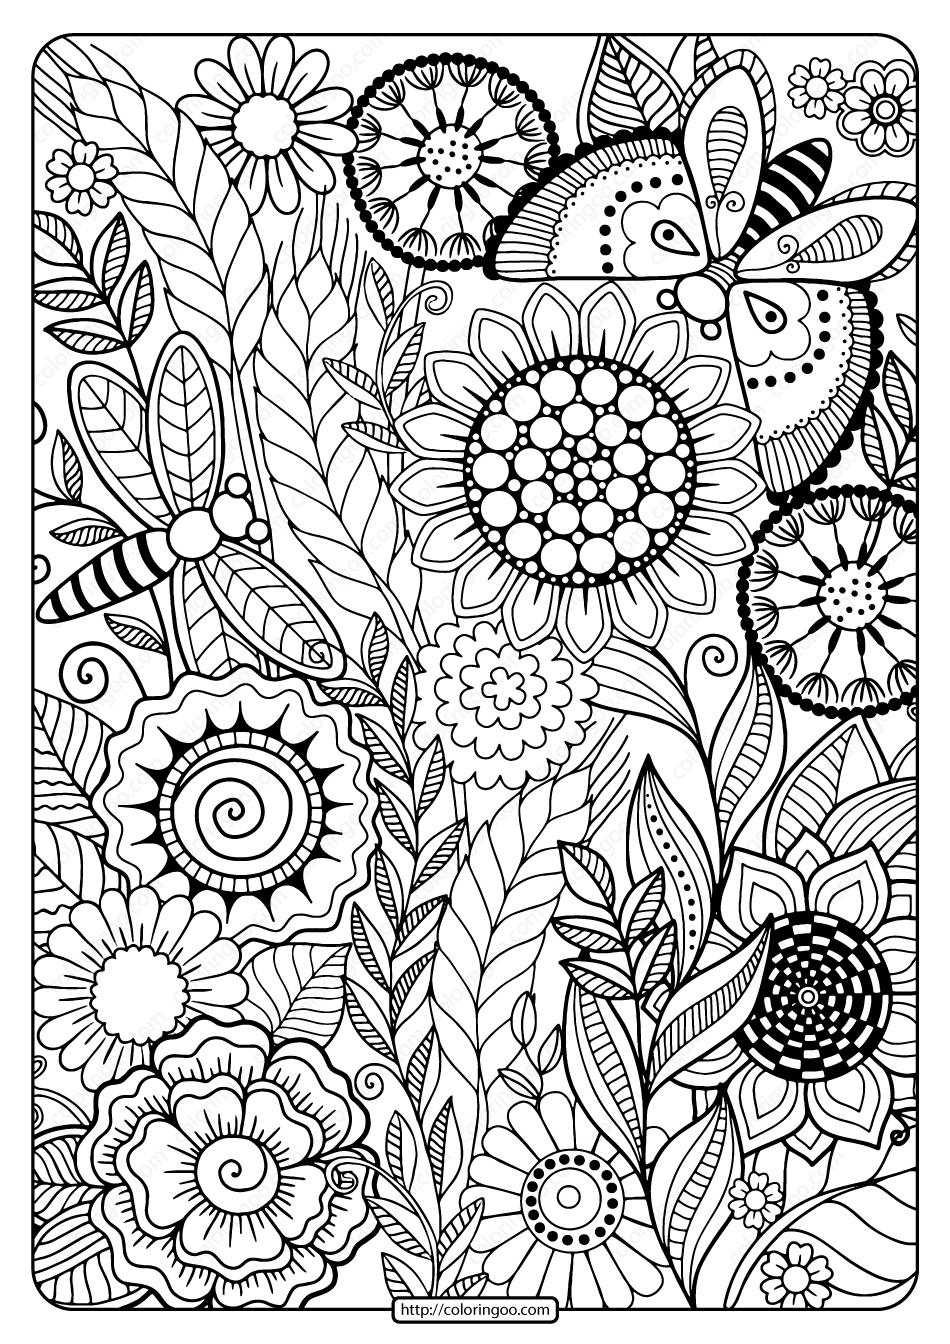 Printable Summer Flowers Pdf Coloring Page In 2020 Summer Coloring Pages Mandala Coloring Pages Summer Coloring Sheets